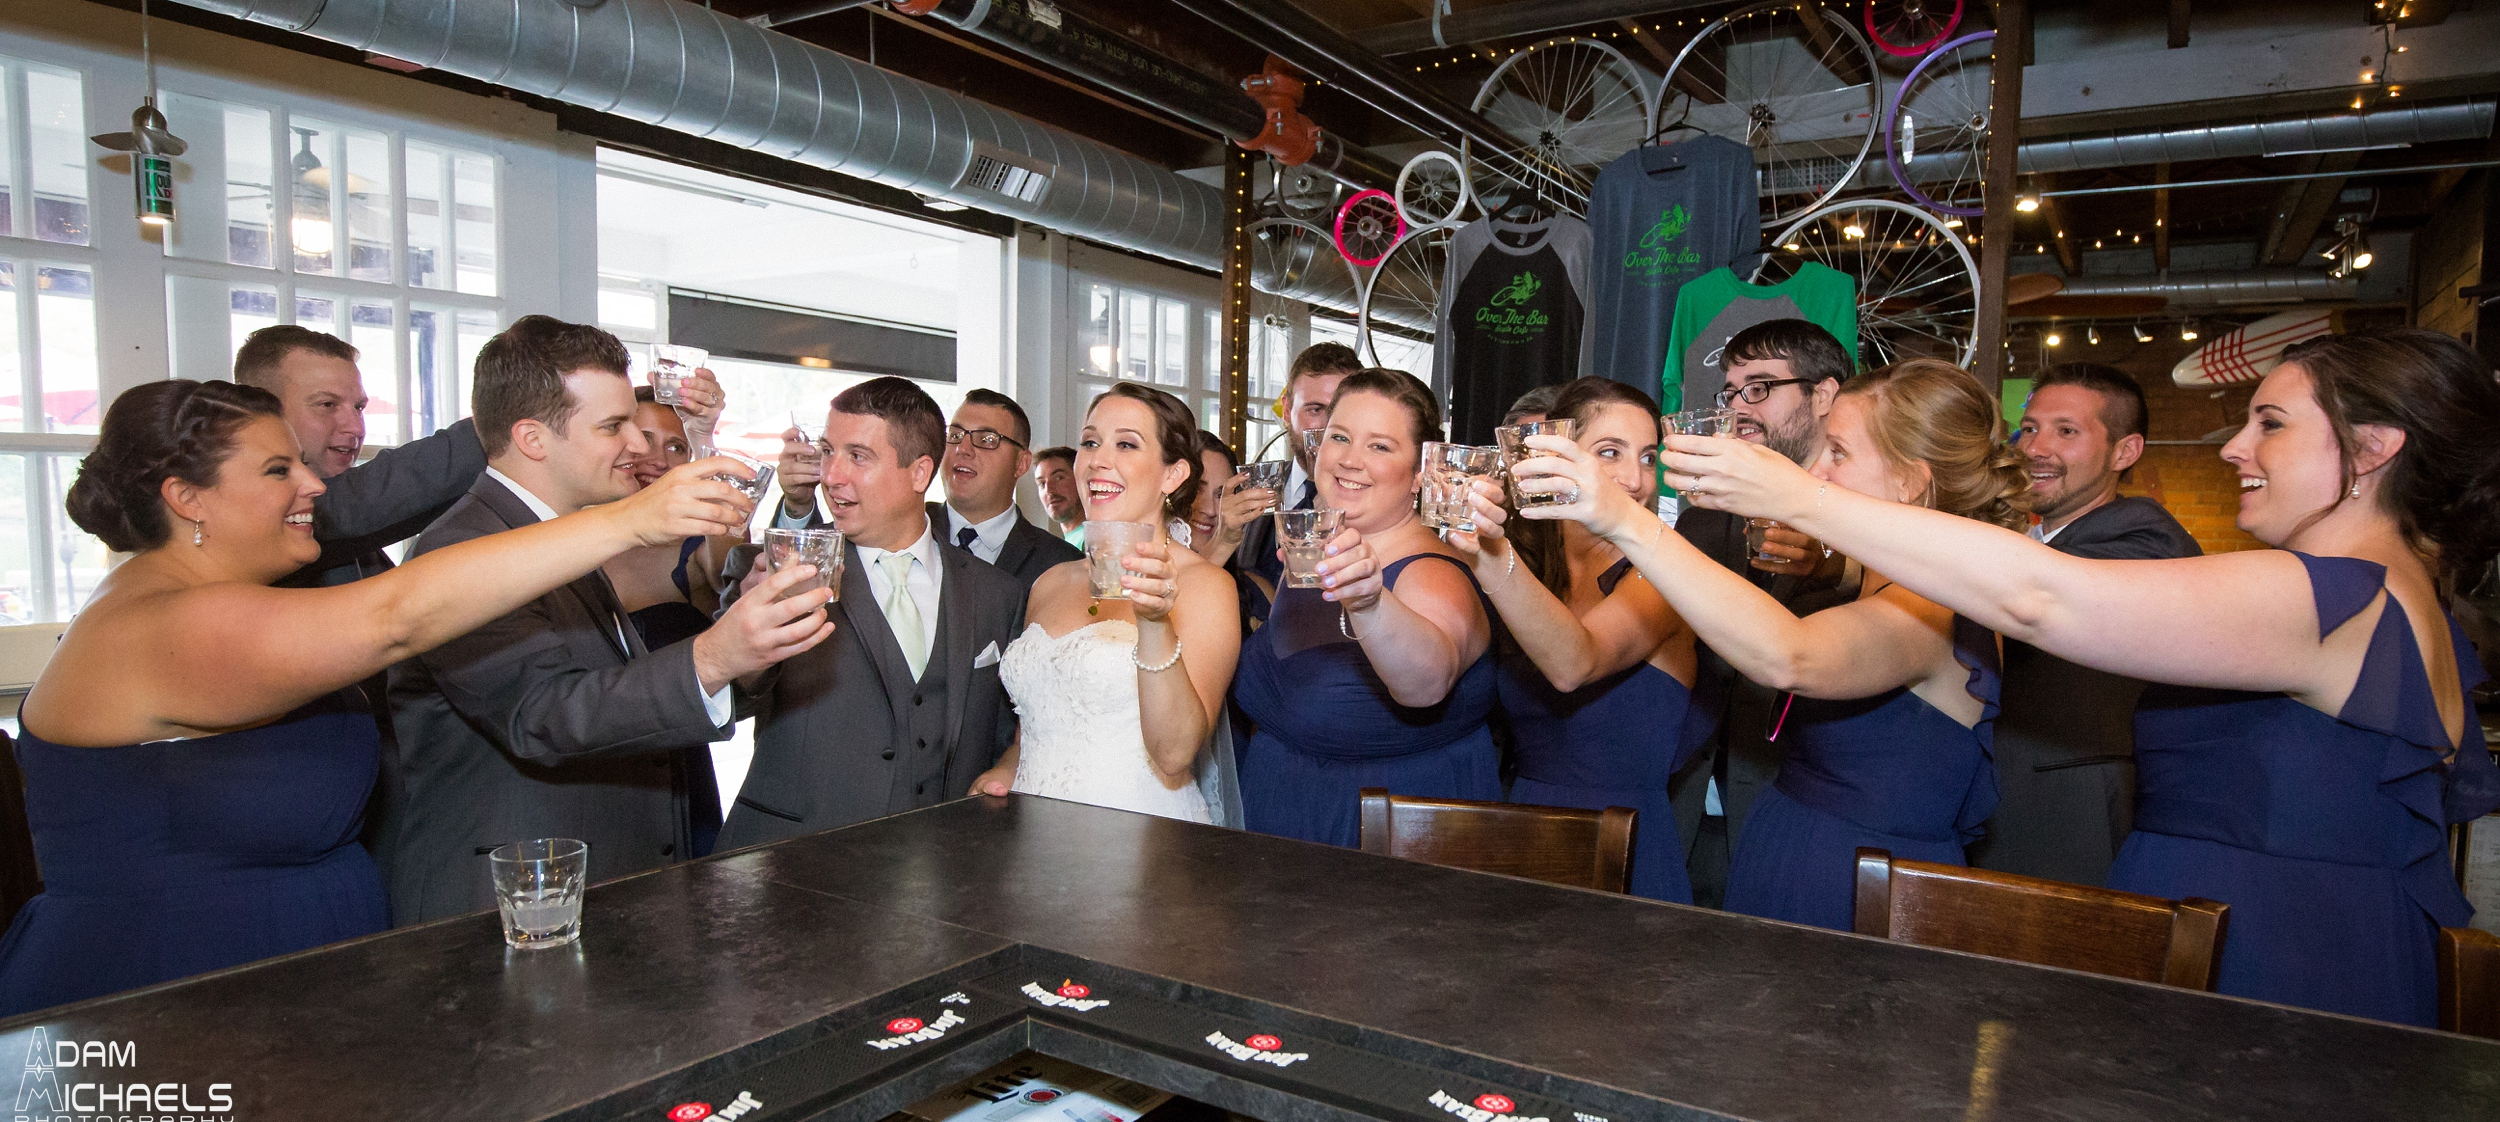 North Park boathouse Wedding Pictures_1169.jpg